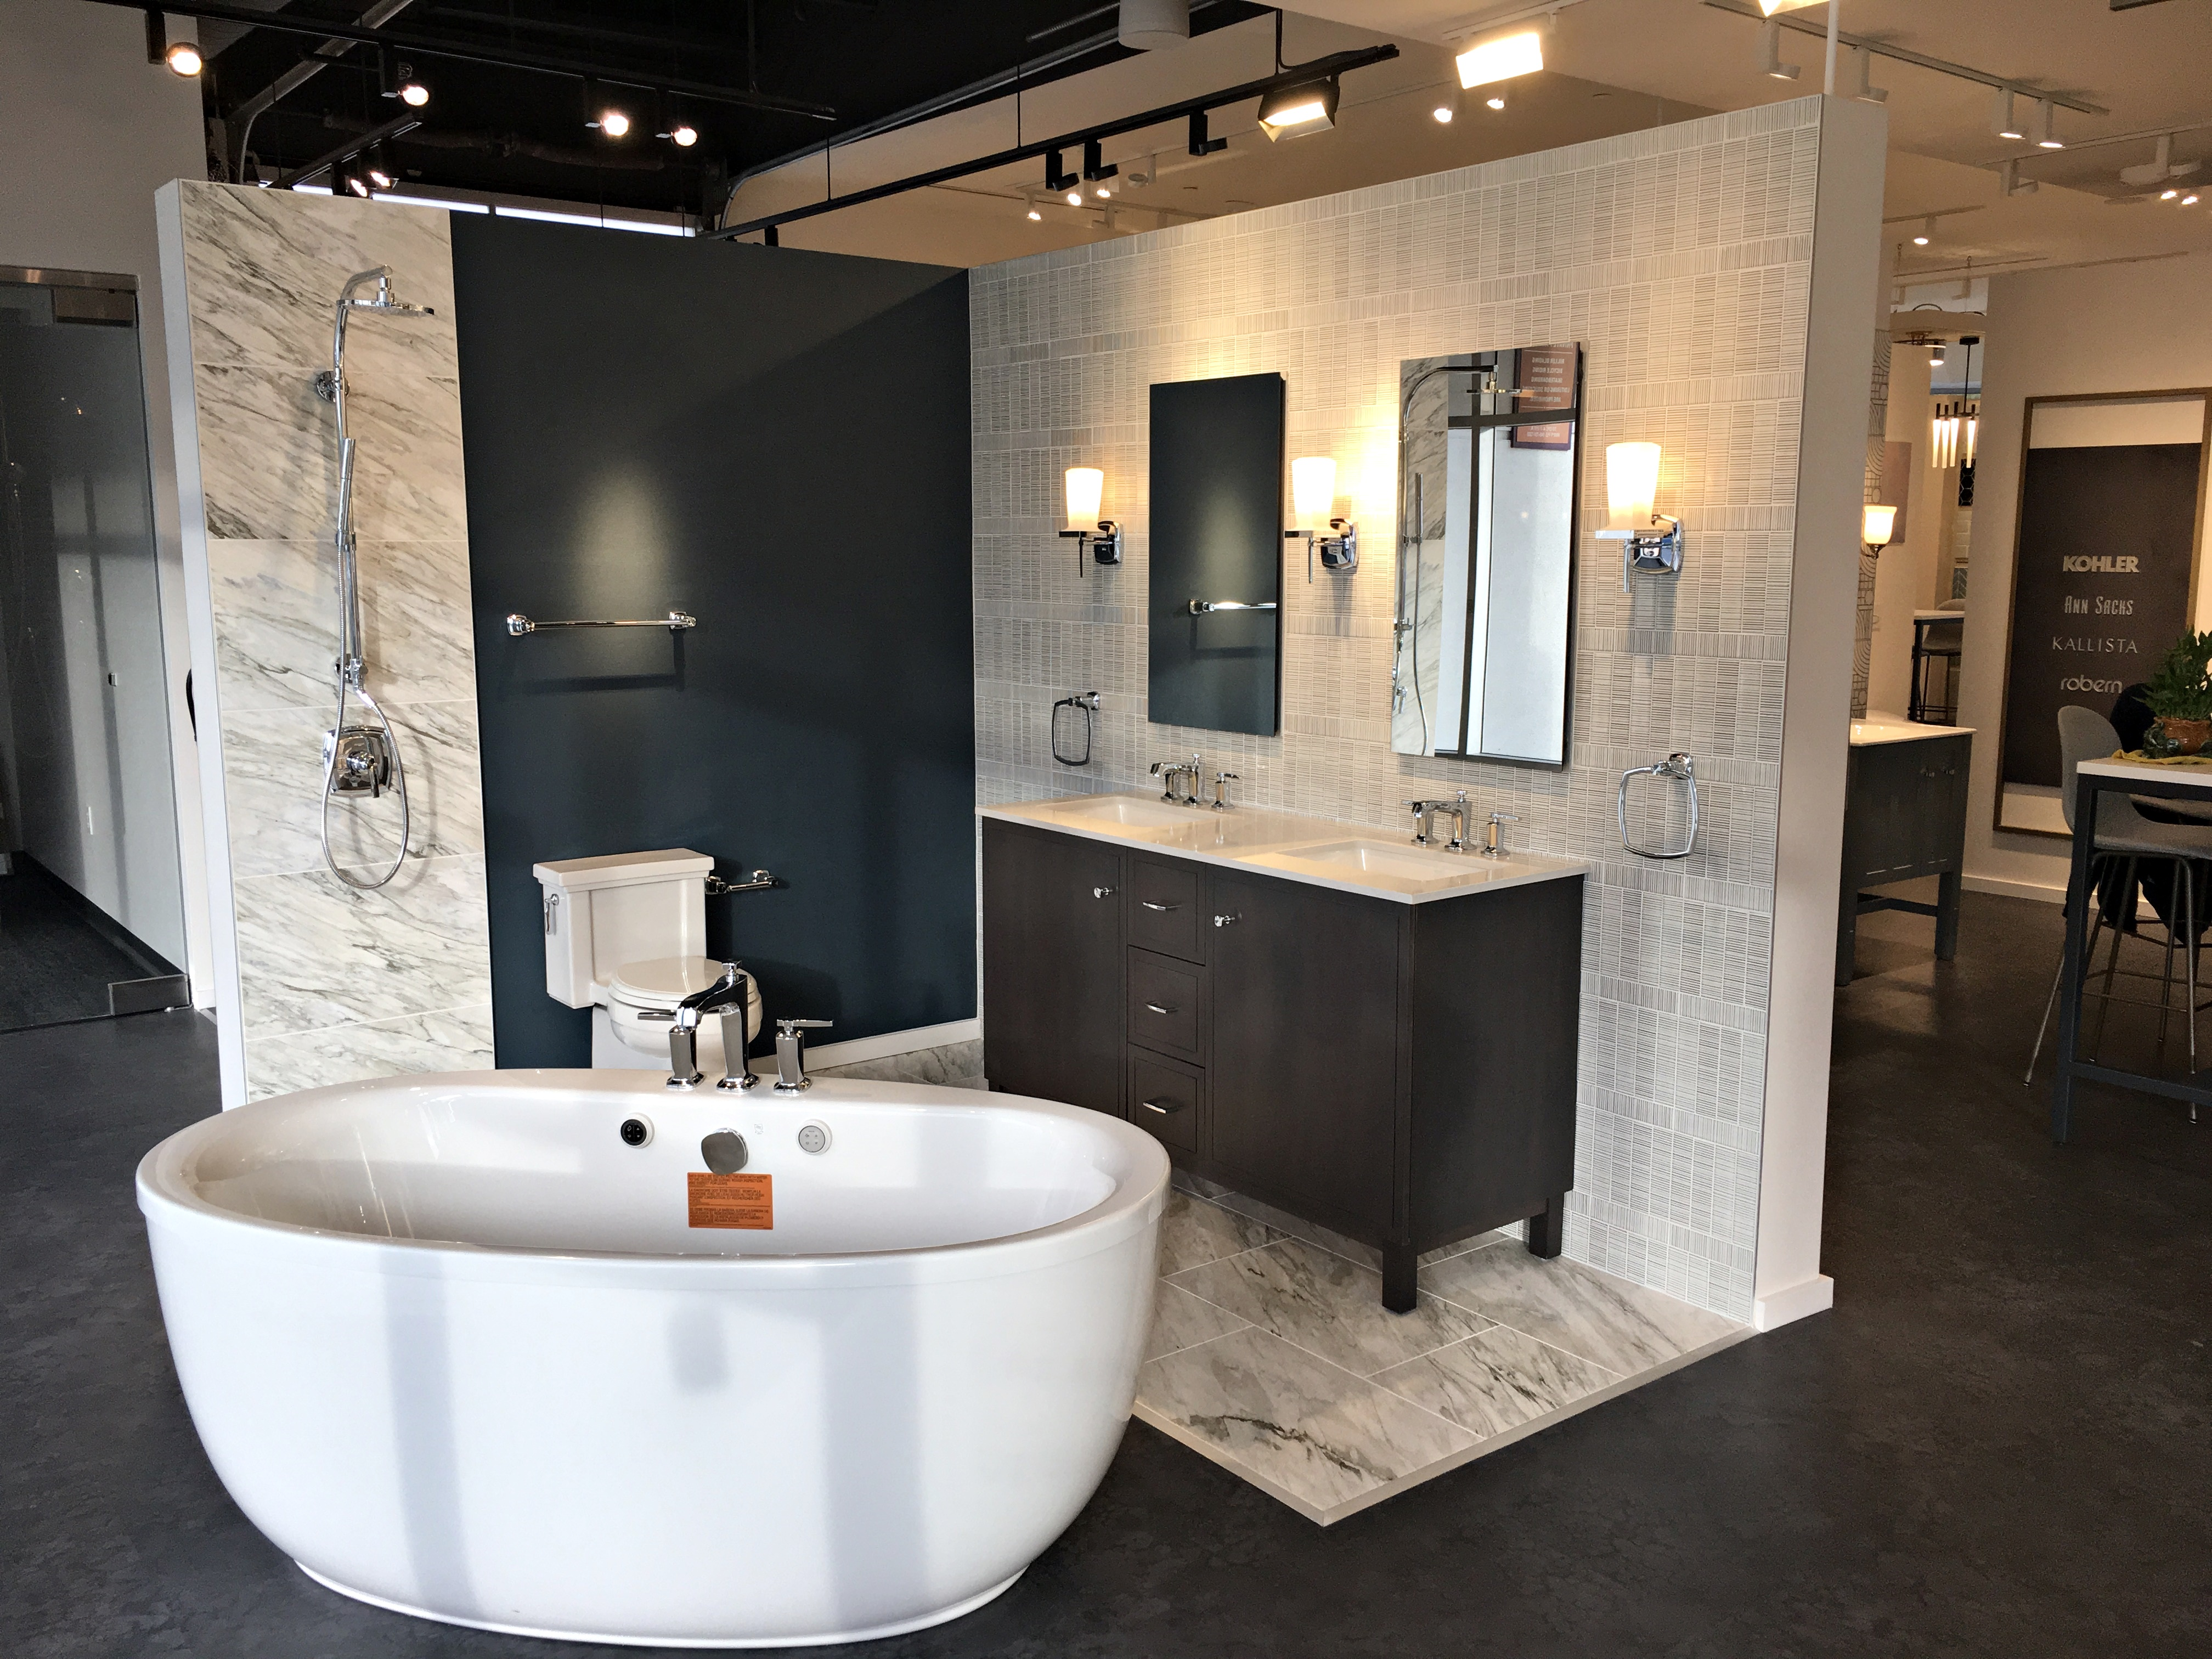 Kohler Signature Store at Spectrum Crossroads in Irvine, CA by Westwood Contractors.